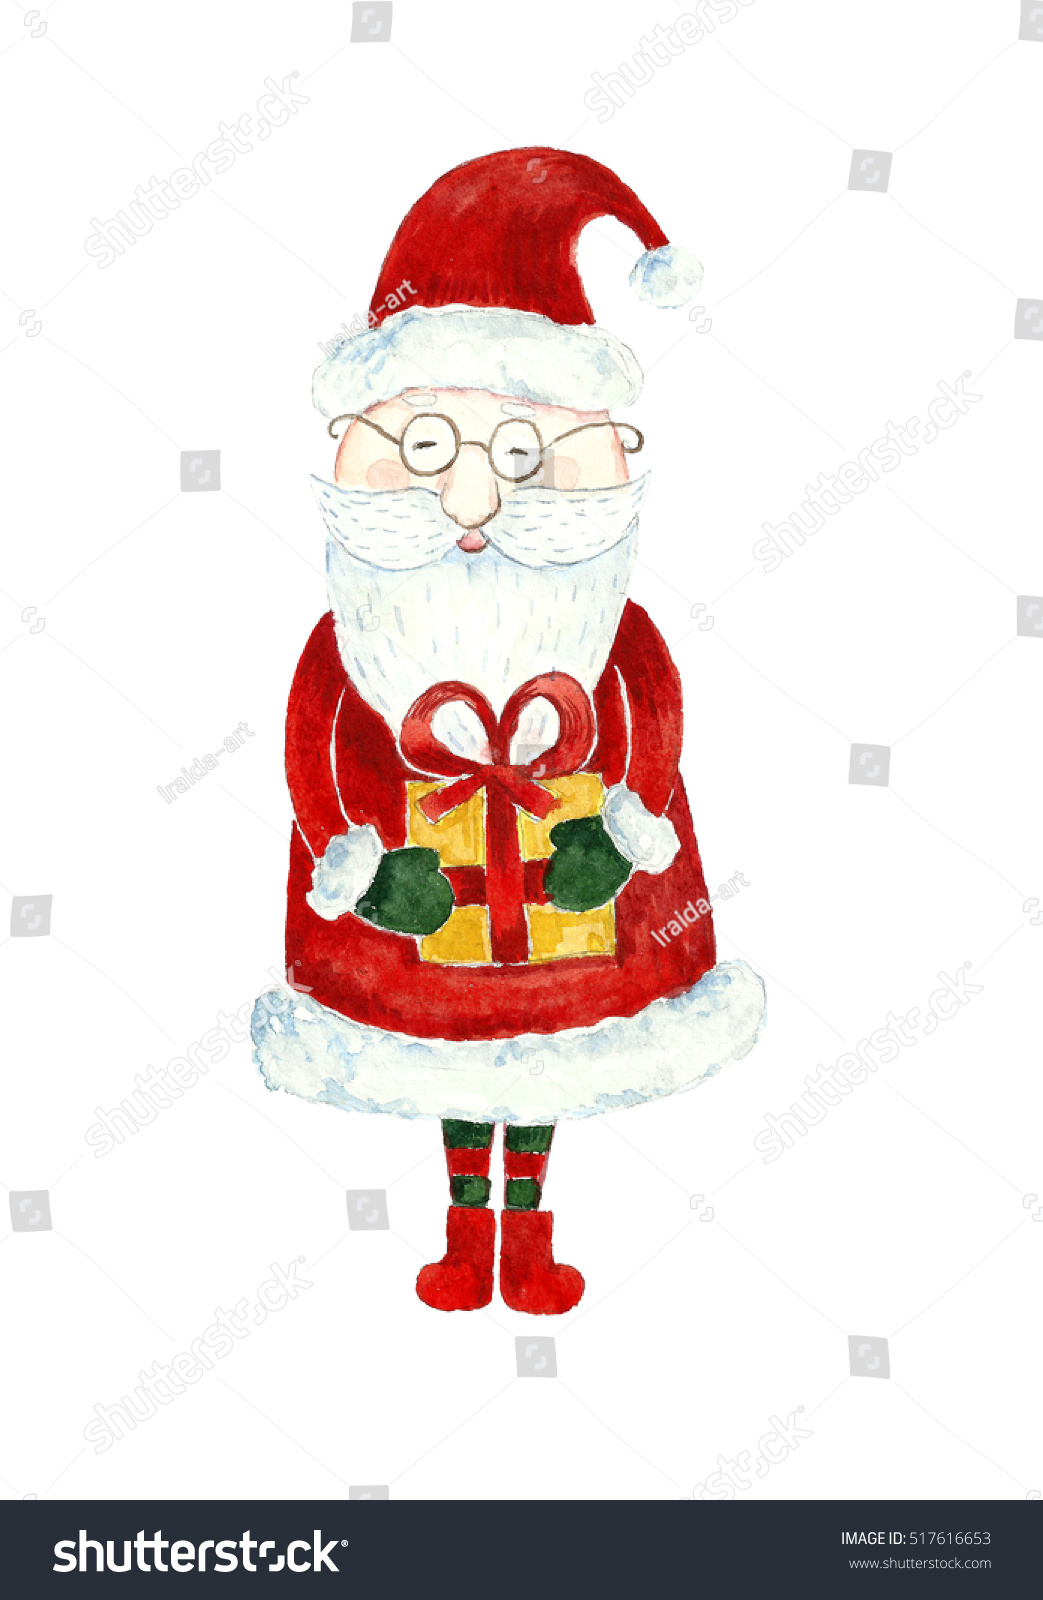 Santa claus gift box stock illustration